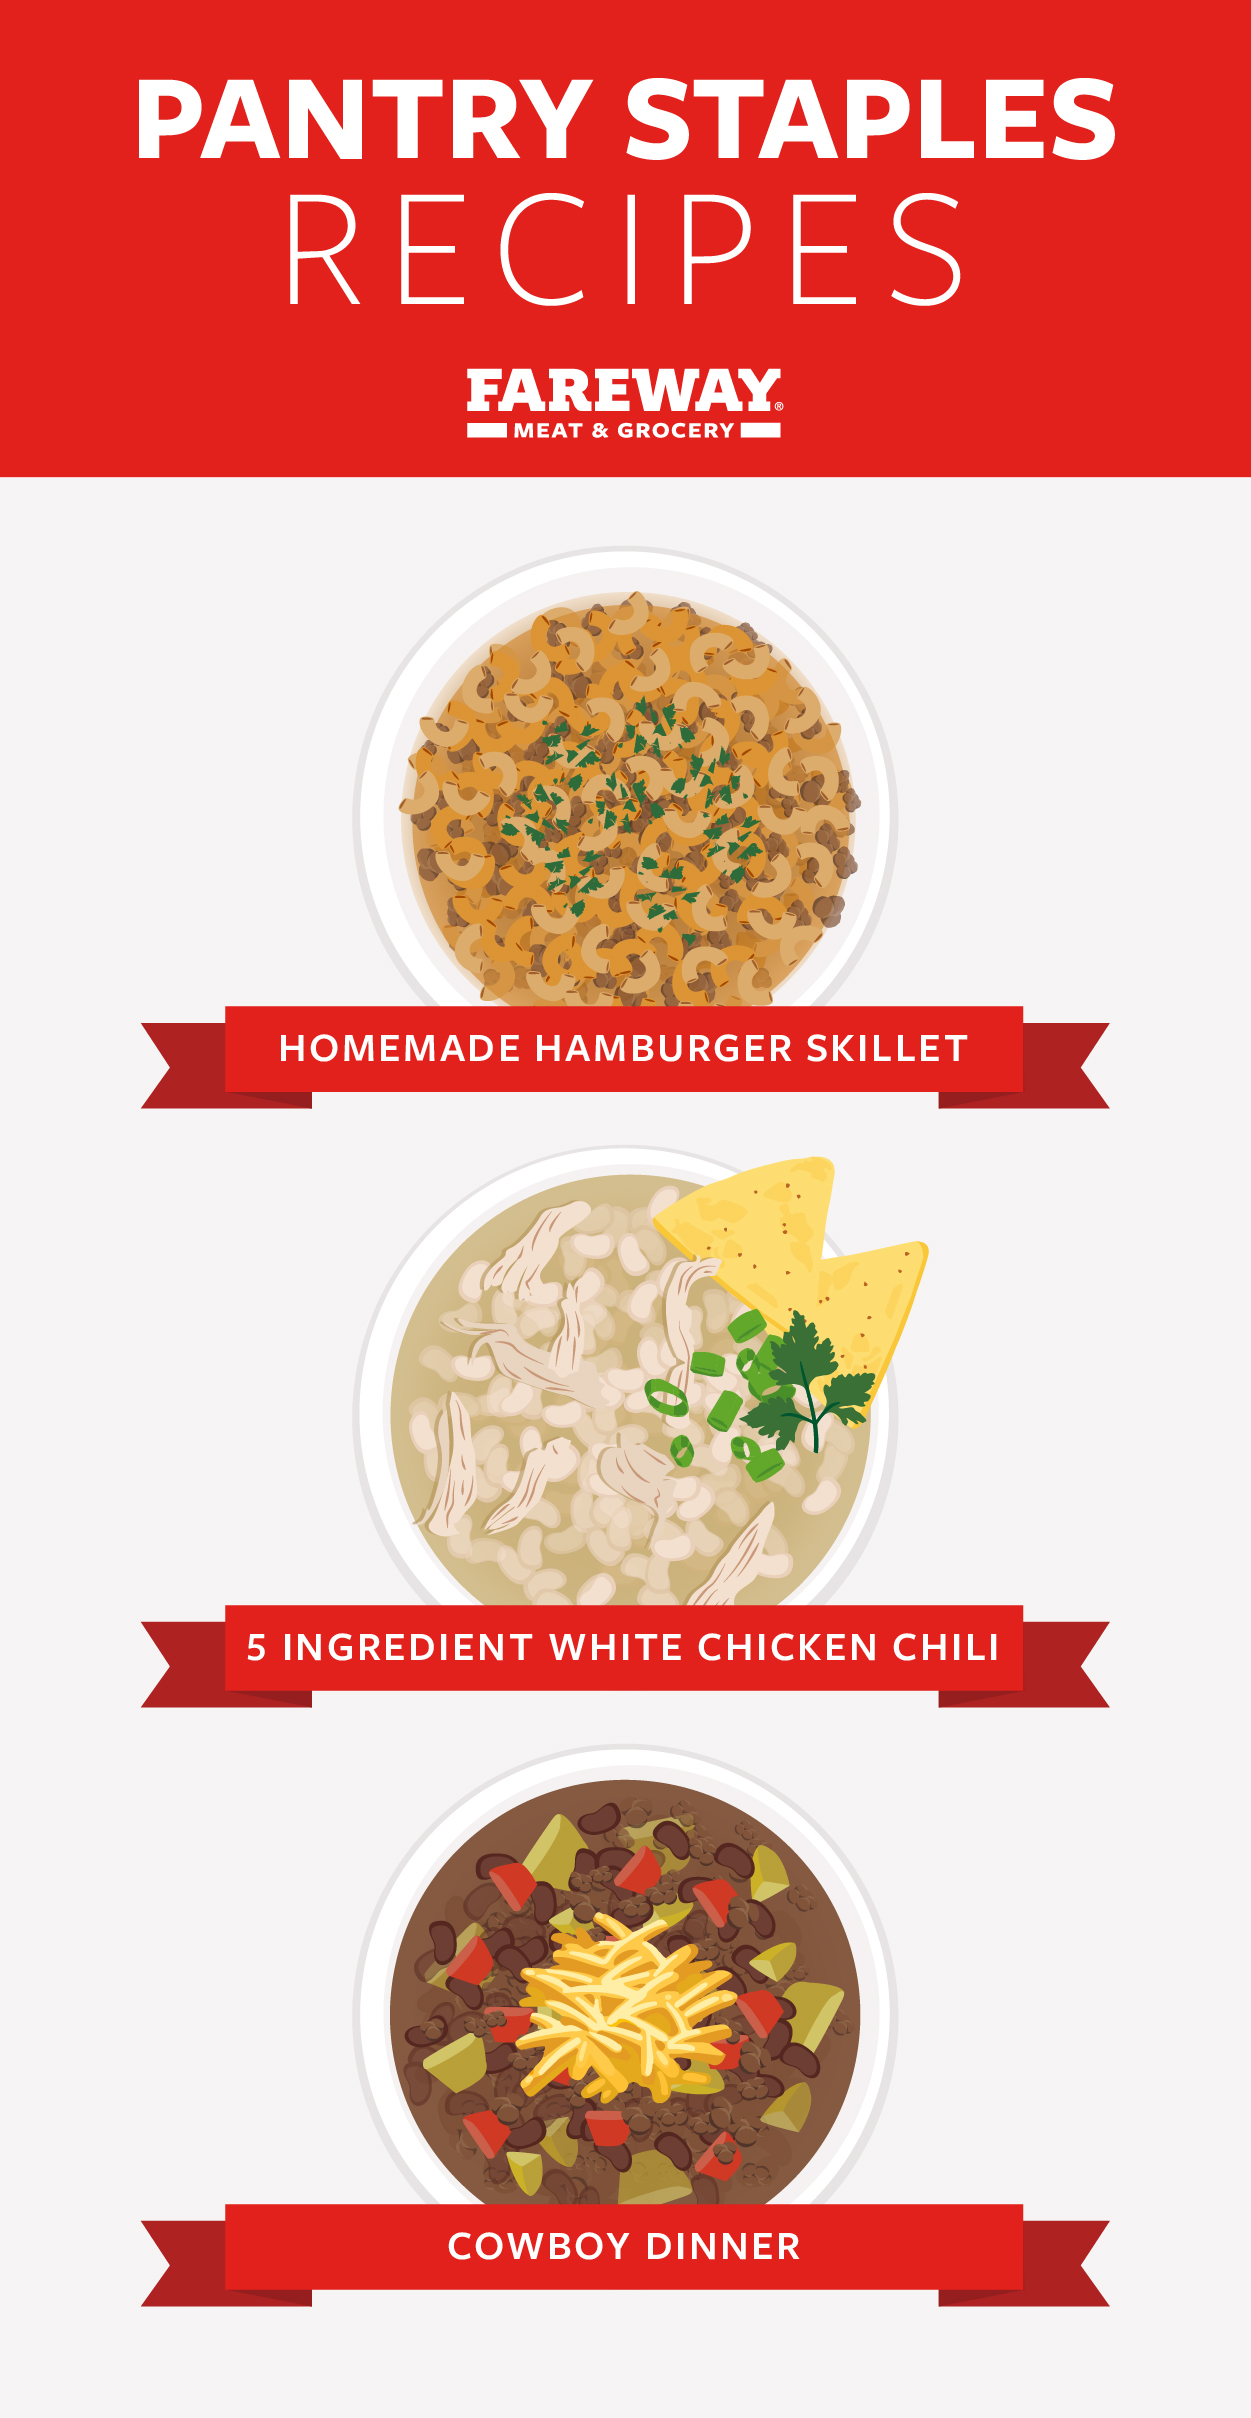 Infographic of Pantry Staples Recipes.